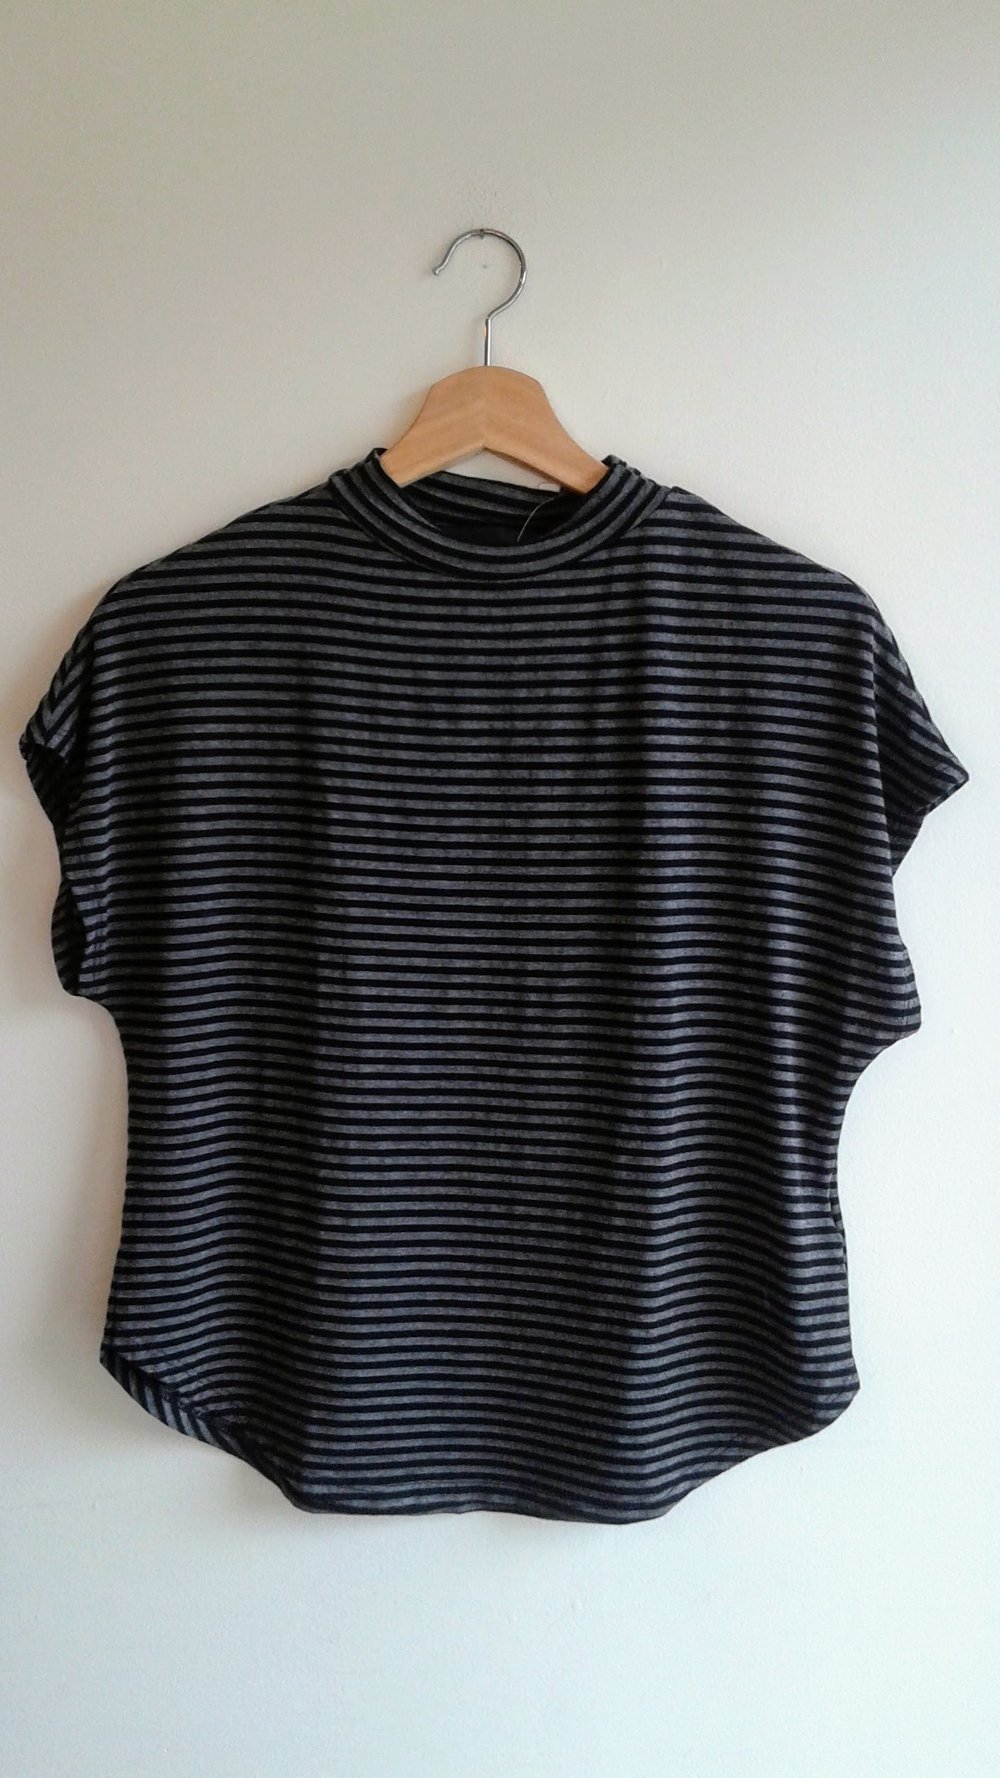 Workhall top; Size M, $28